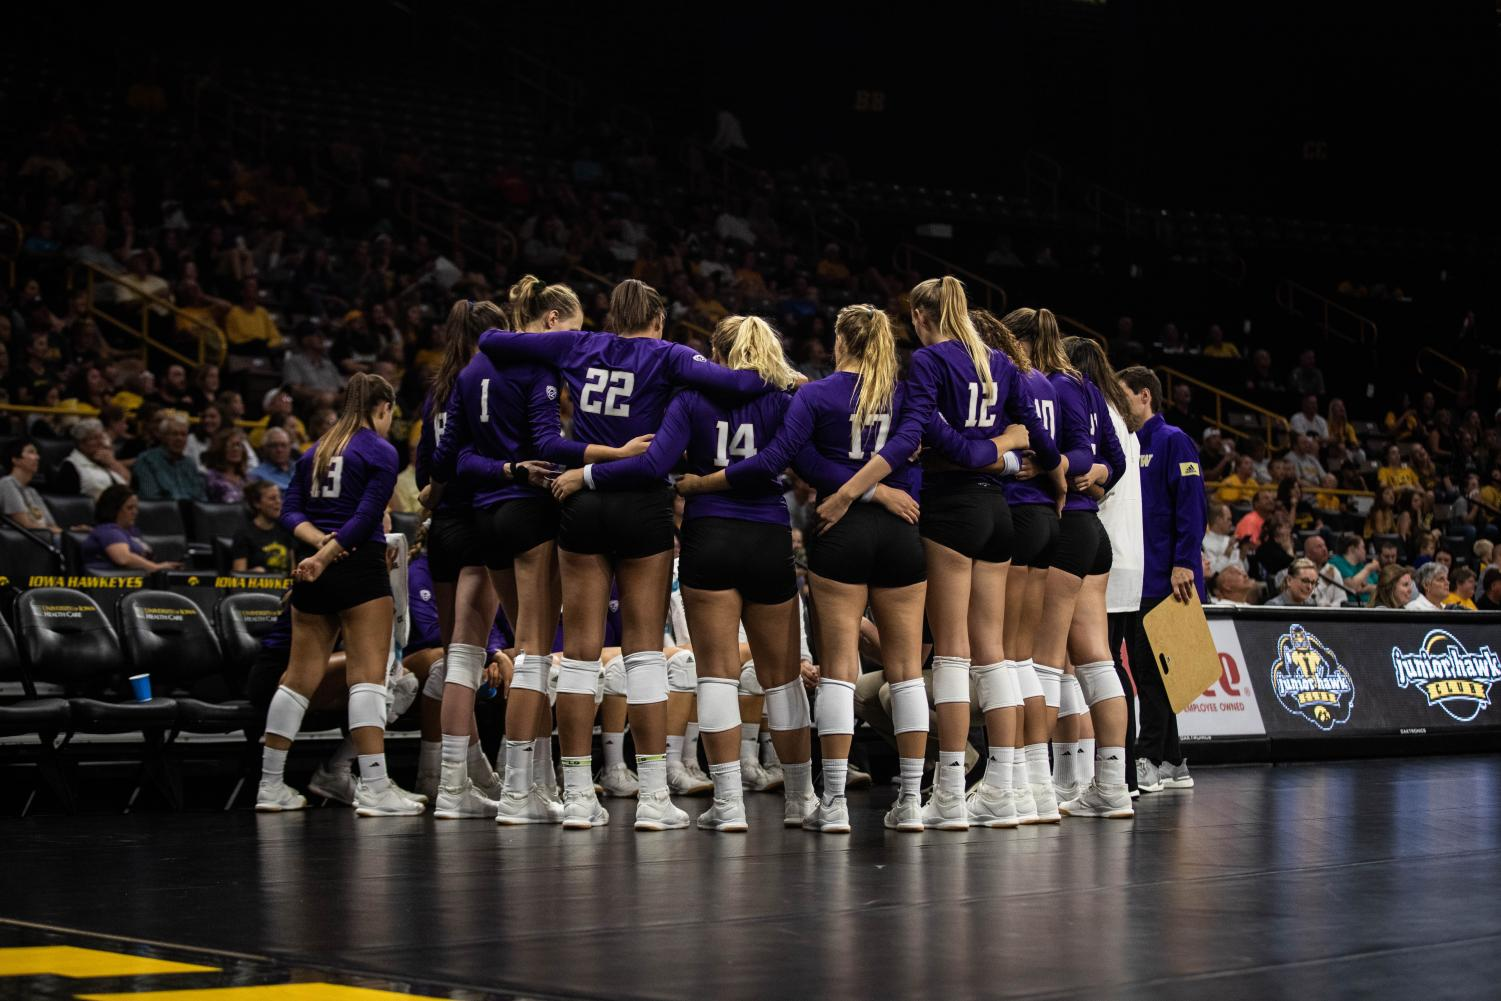 Washington+players+huddle+up+during+a+volleyball+match+between+Iowa+and+Washington+at+Carver+Hawkeye+Arena+on+Saturday%2C+September+7%2C+2019.+The+Hawkeyes+were+defeated+by+the+Huskies%2C+3-1.